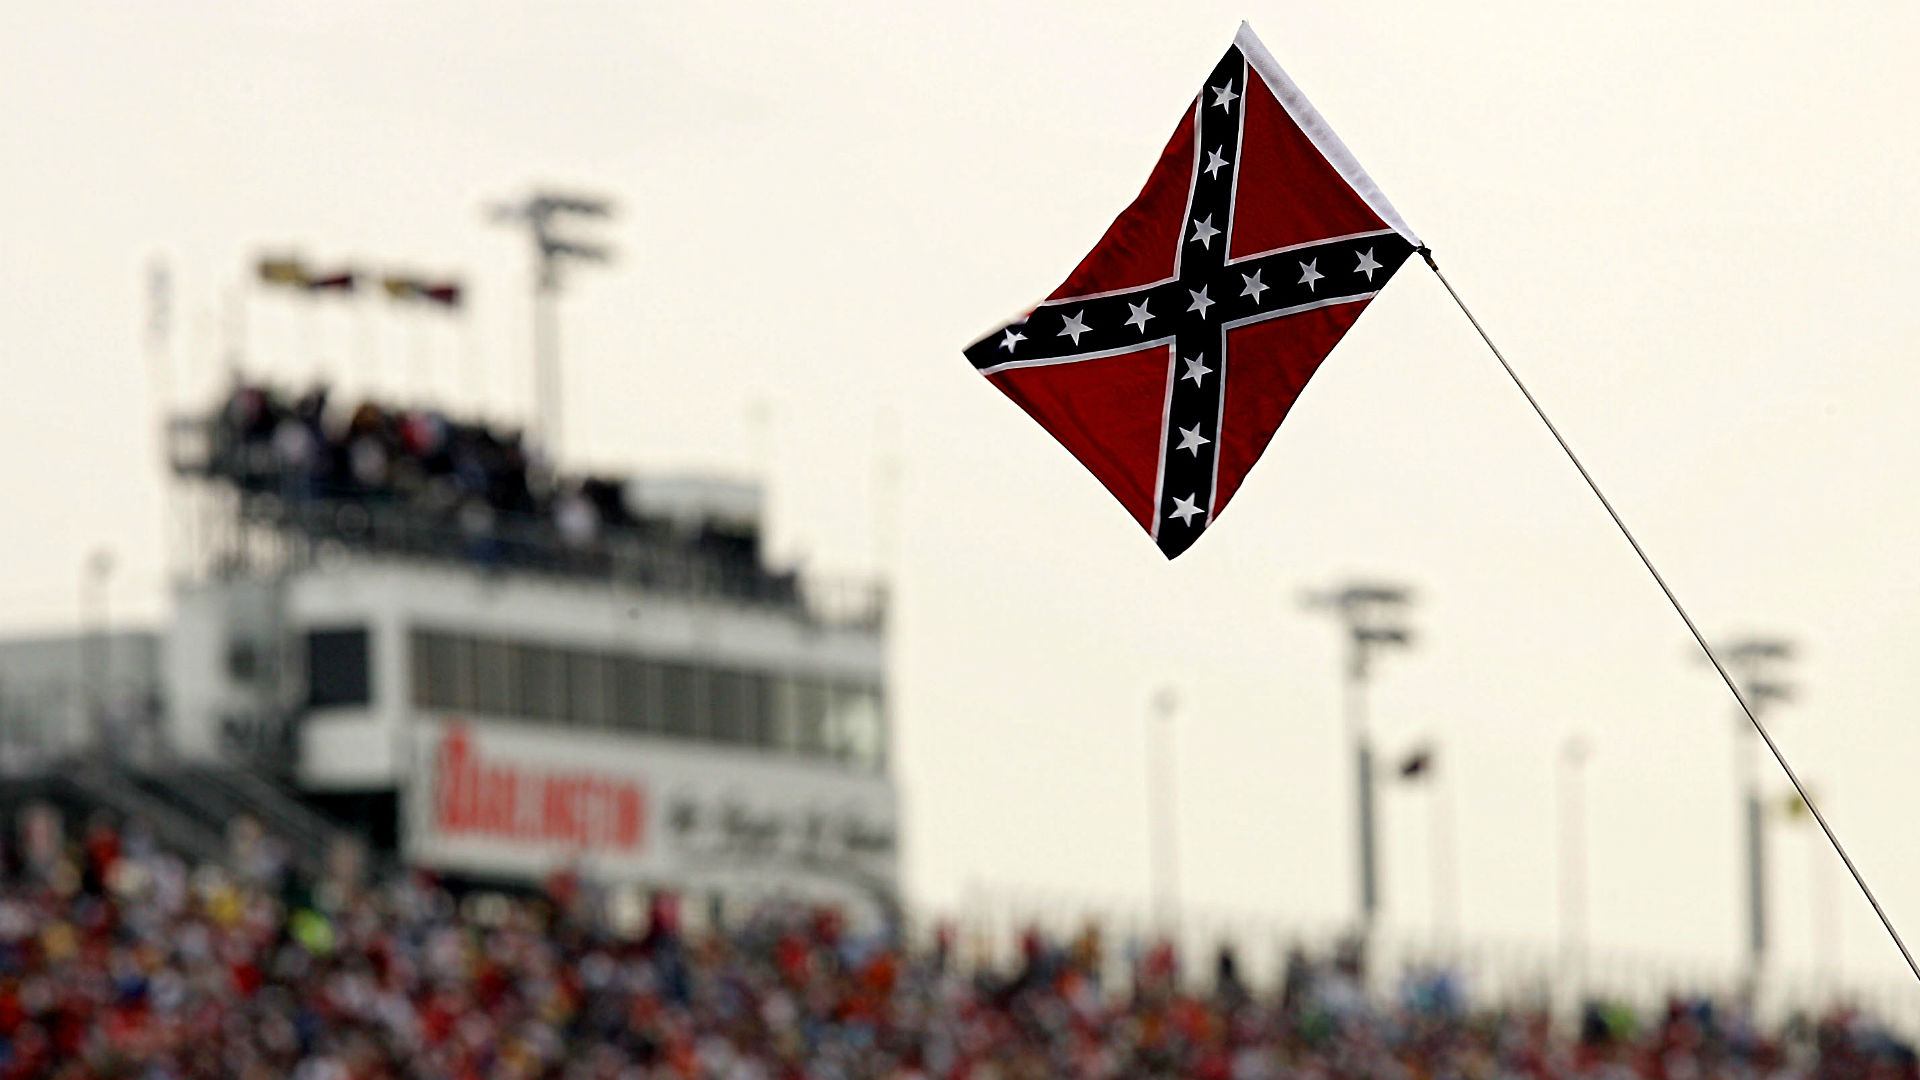 NASCAR tracks unite to discourage display of Confederate flag at races